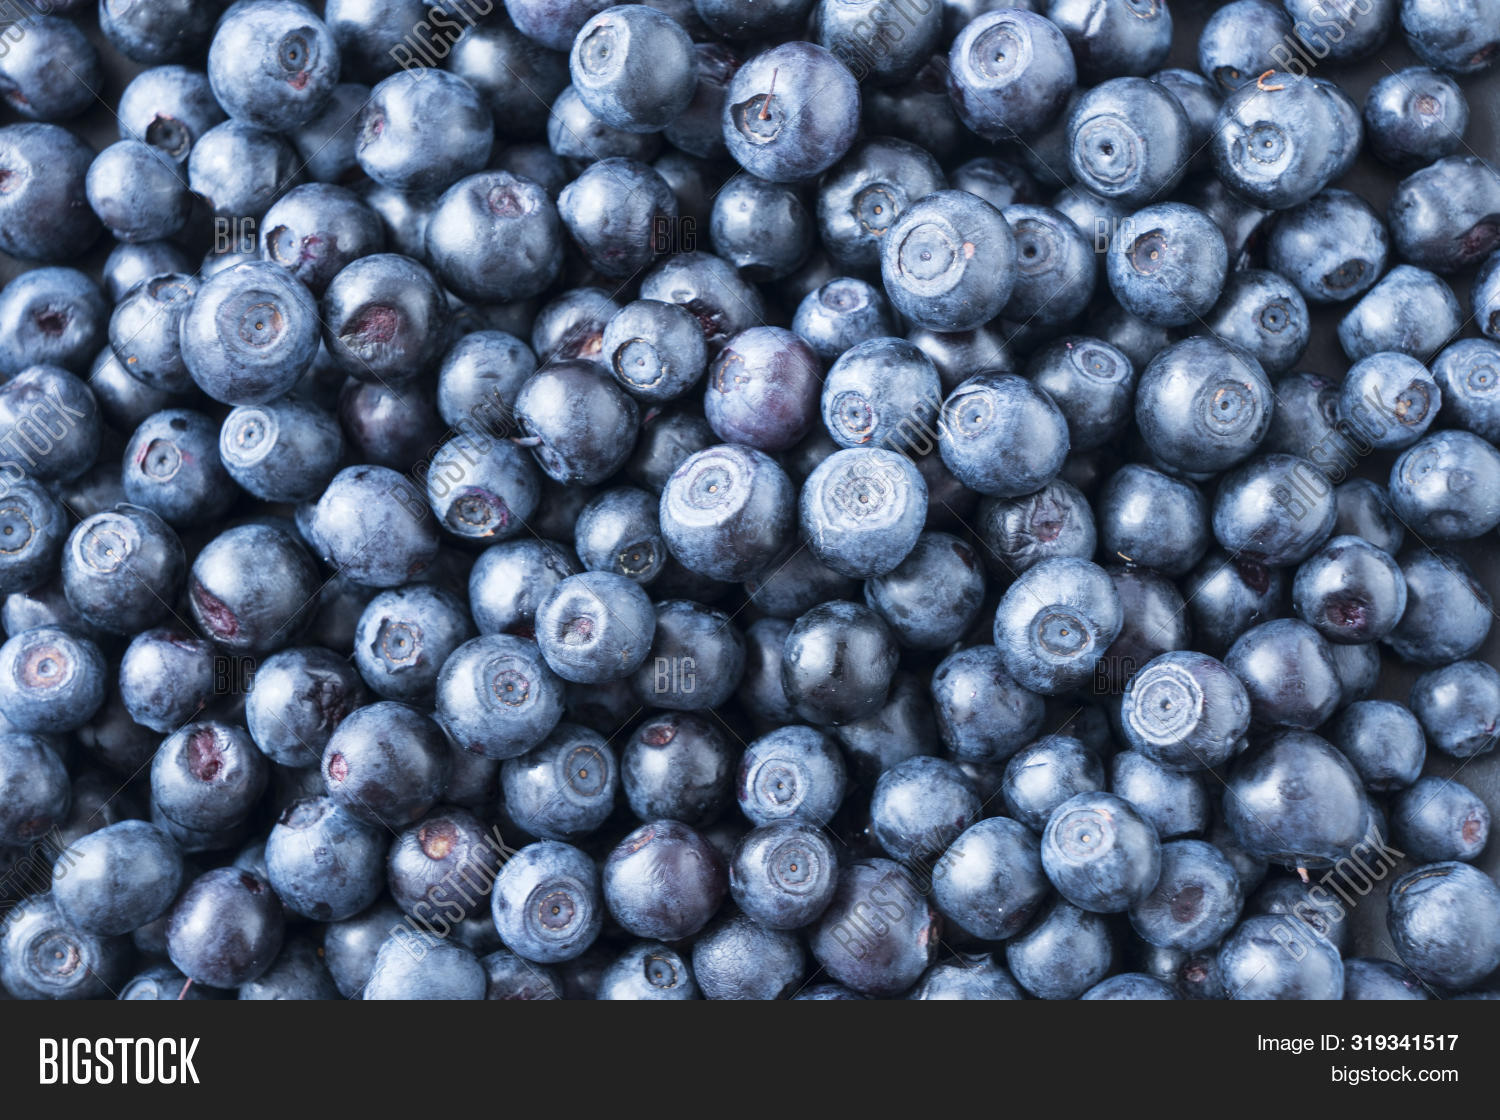 Fresh Ripe Blueberries With Drops Of Dew. Macro Photo. Fresh Blueberry Background. Texture Blueberry